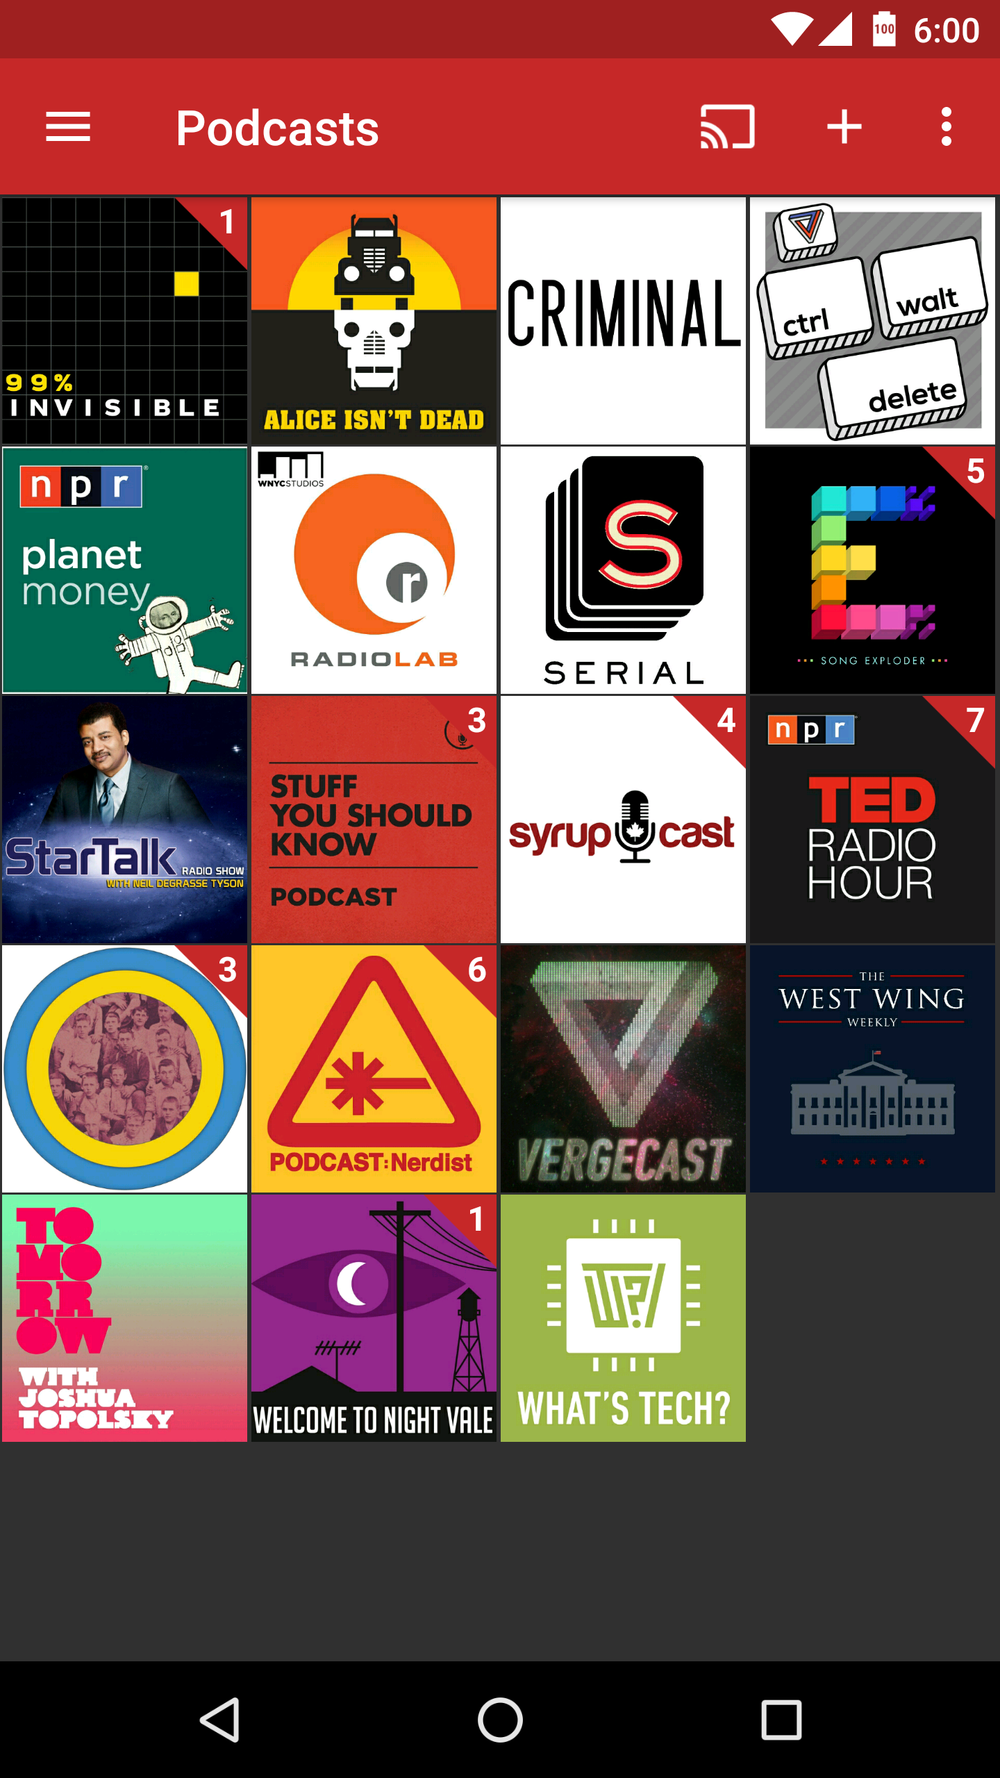 Hello, my name is Tapas, and I have an addiction to podcasts